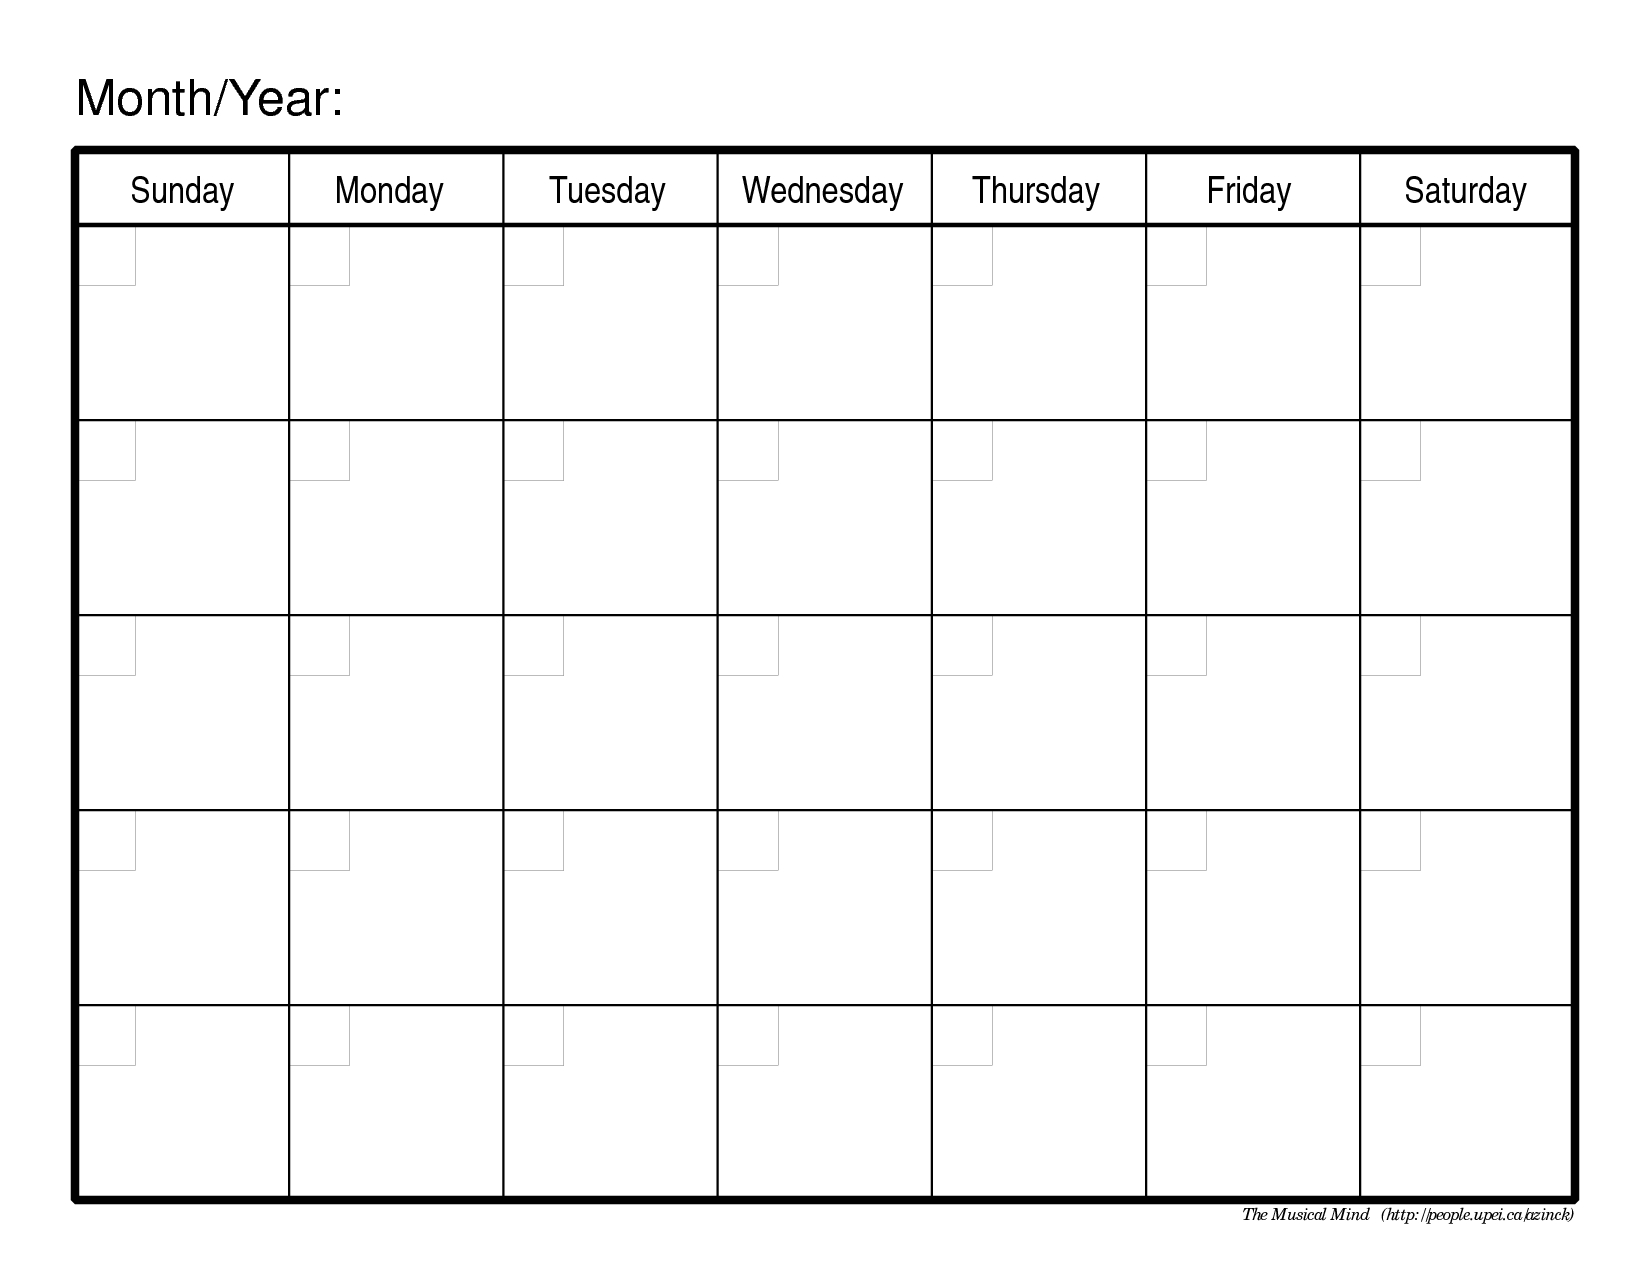 Monthly Calendar Template | Organizing | Monthly Calendar Template within Month By Month Prontable Calender